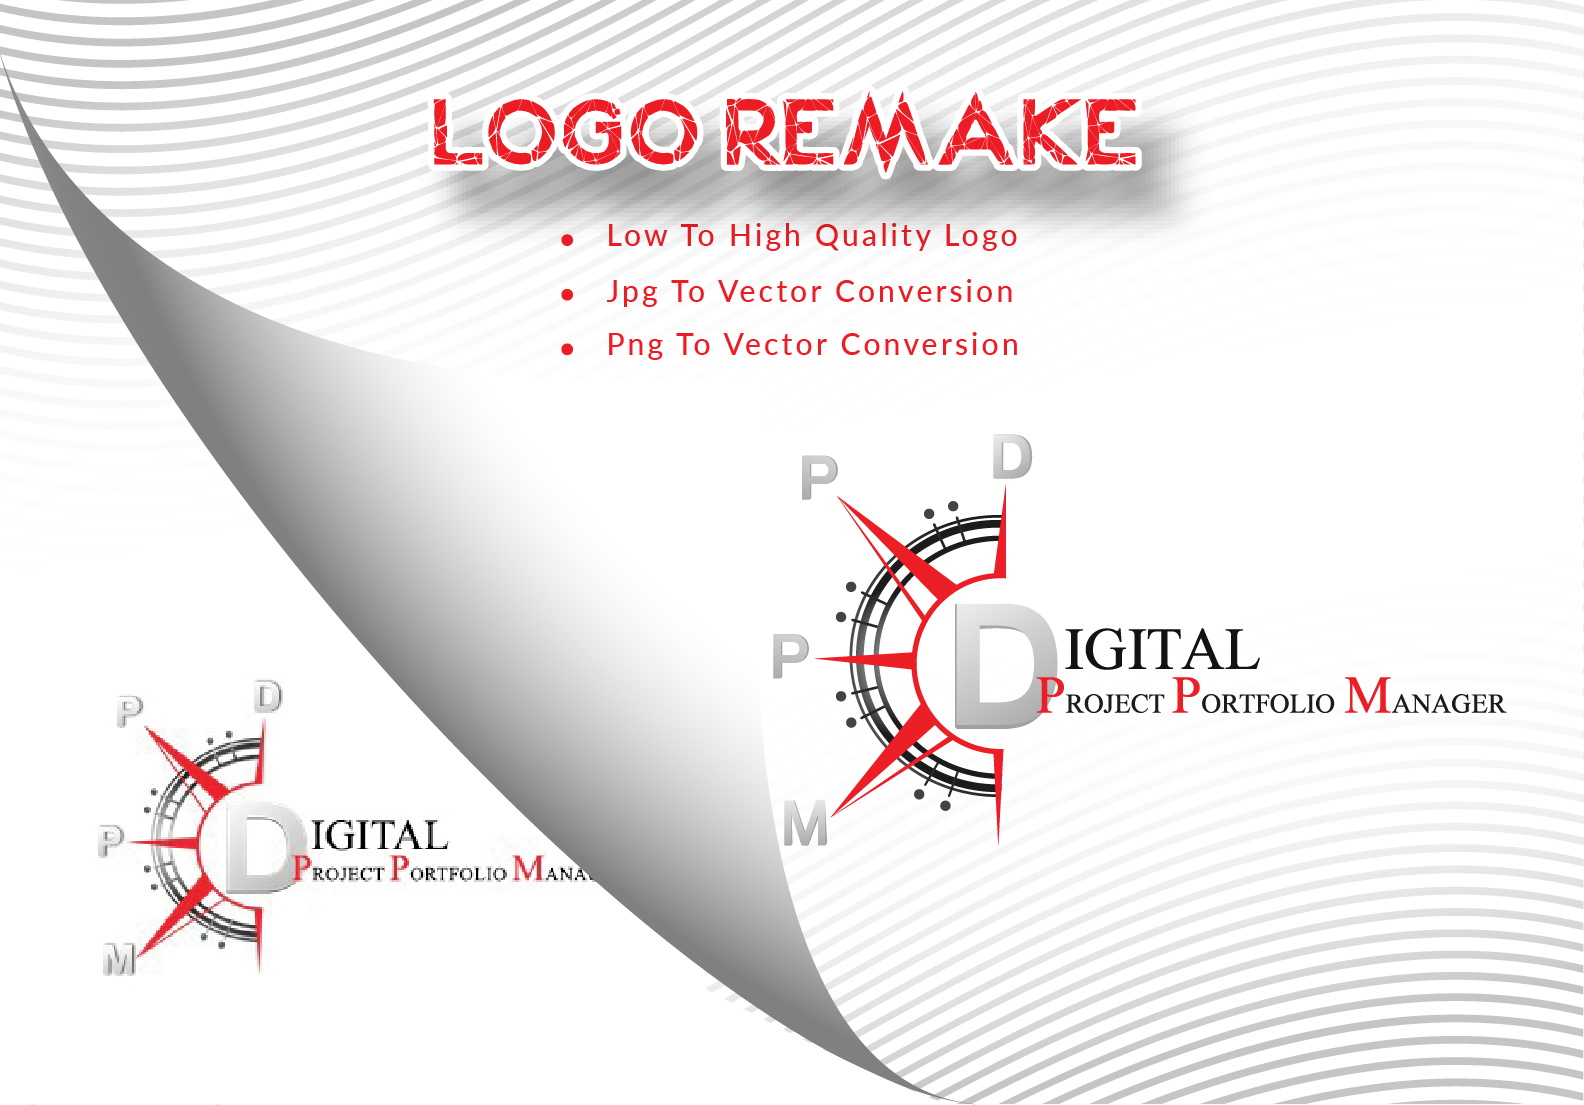 Manually REMAKE LOGO or JPG to Vector of any Logo or Text